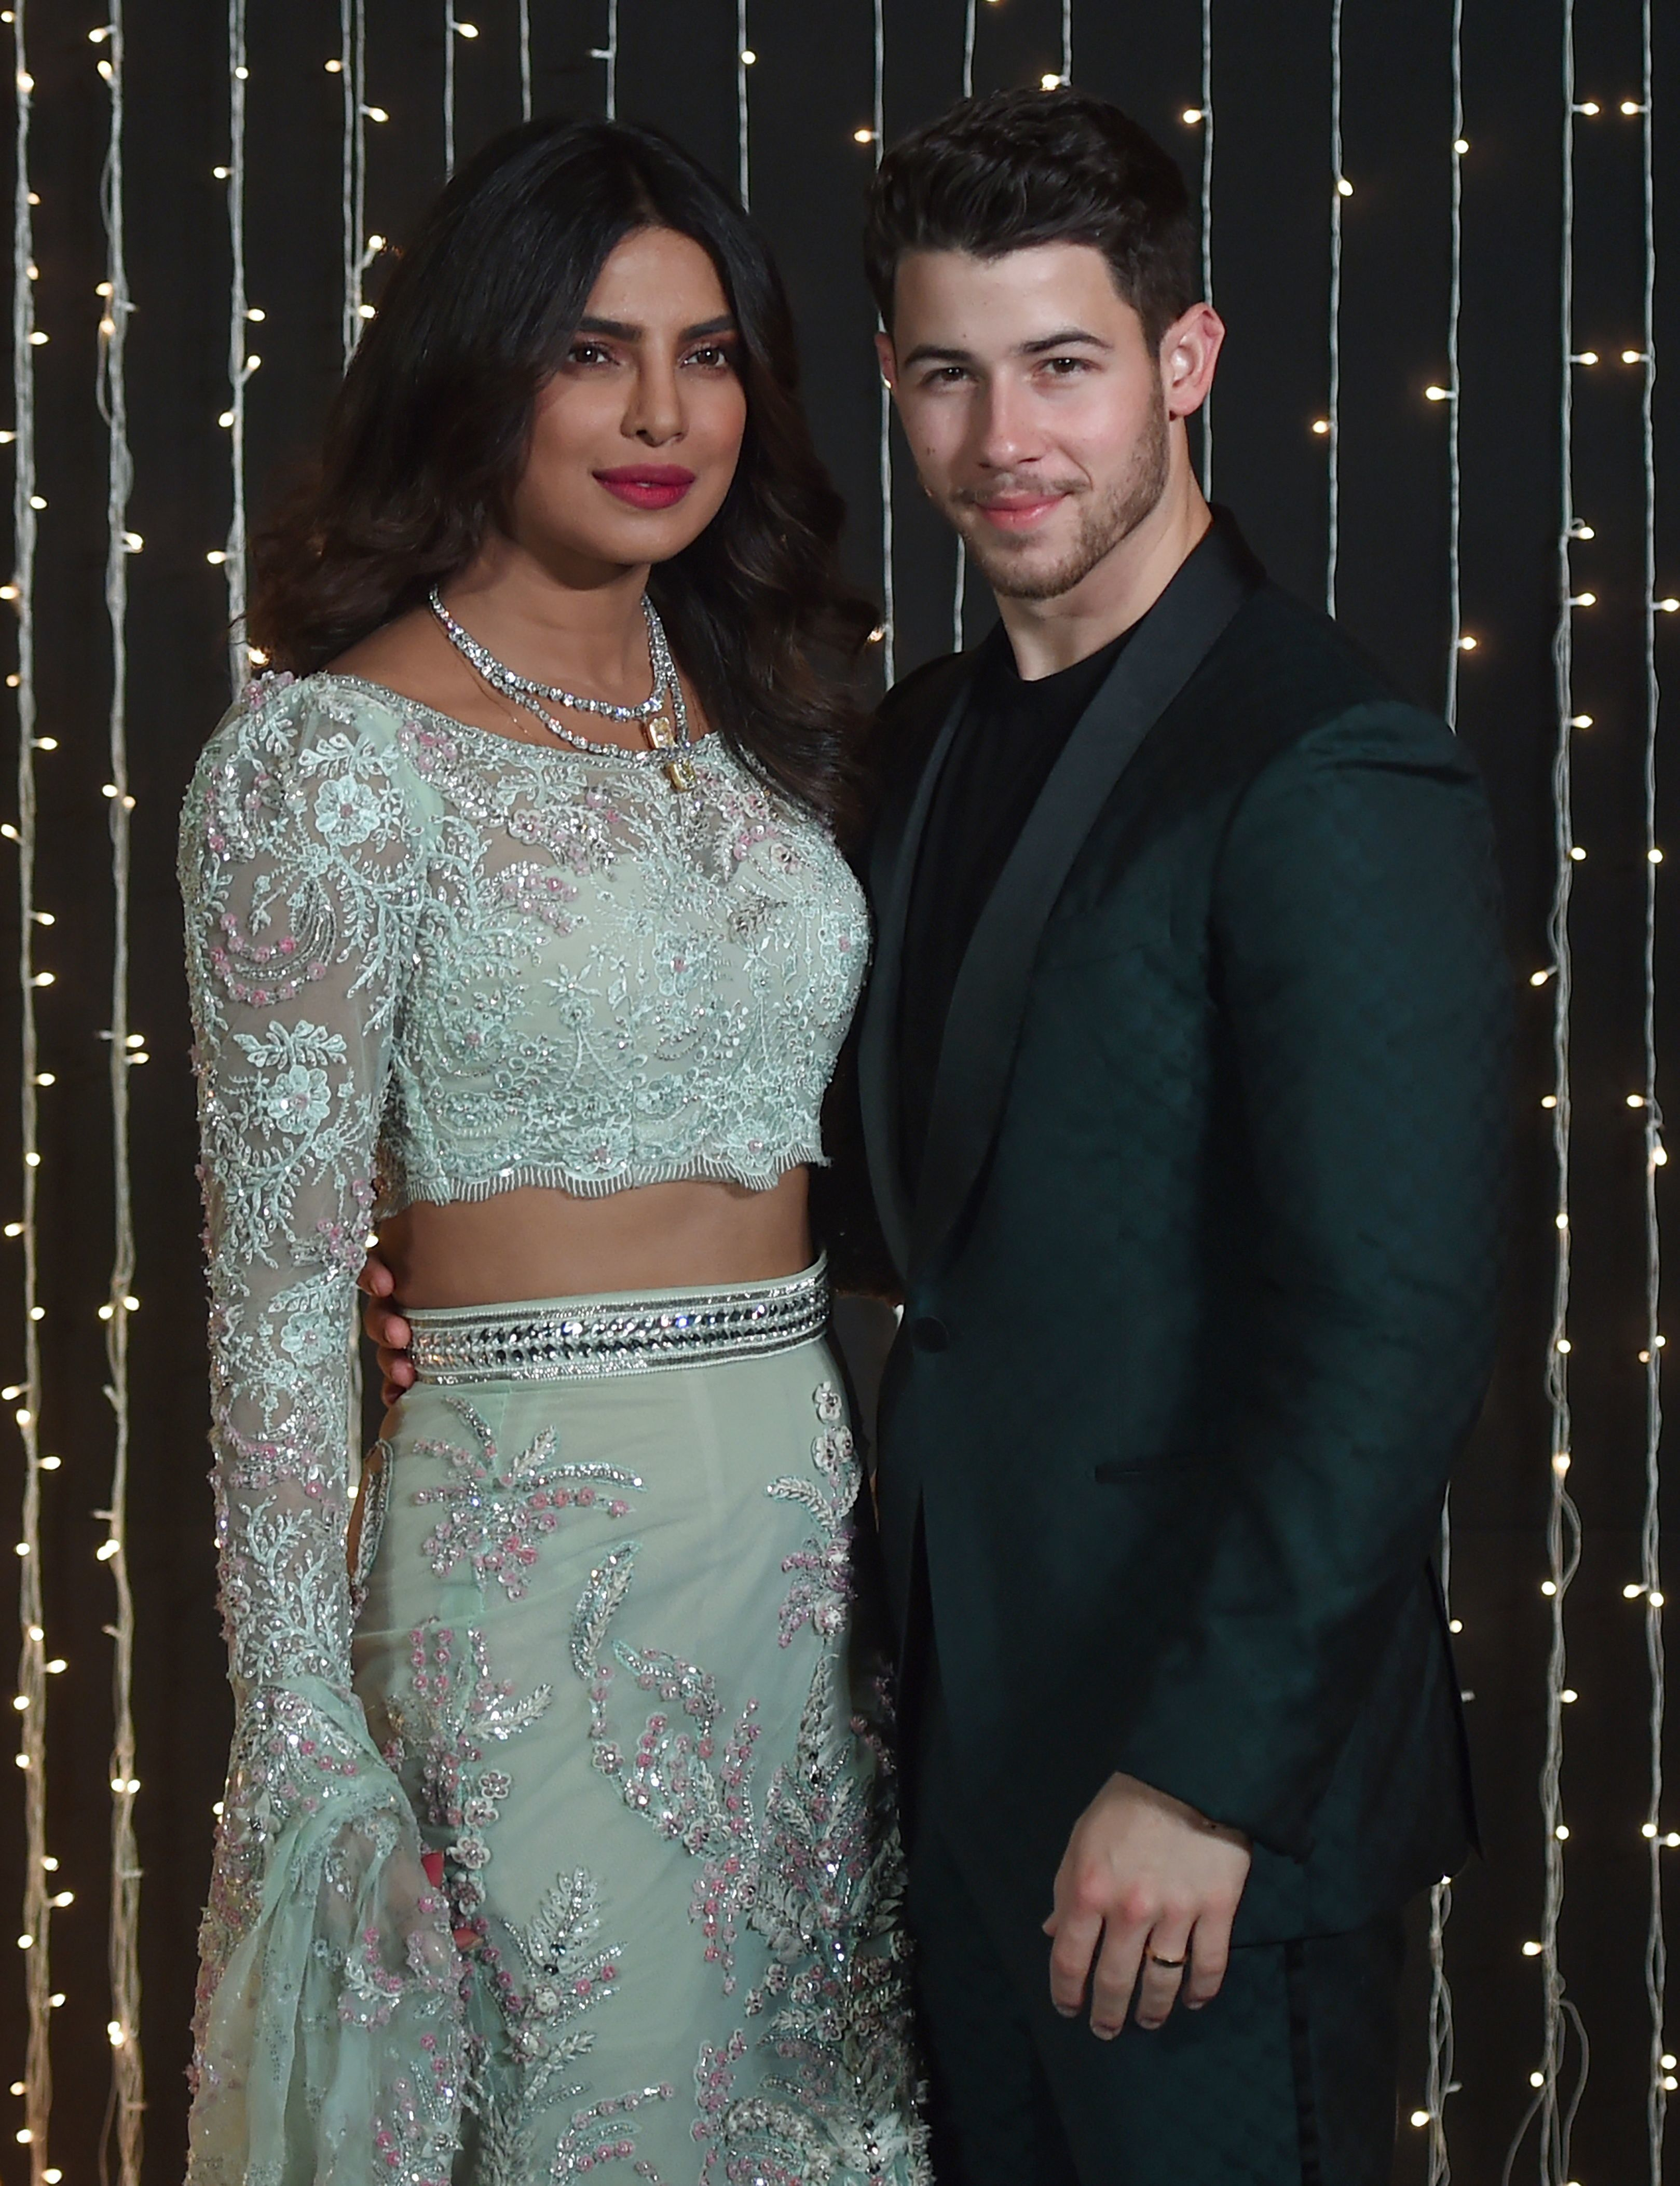 Priyanka Chopra and Nick Jonas pose together at a reception for their wedding in December.